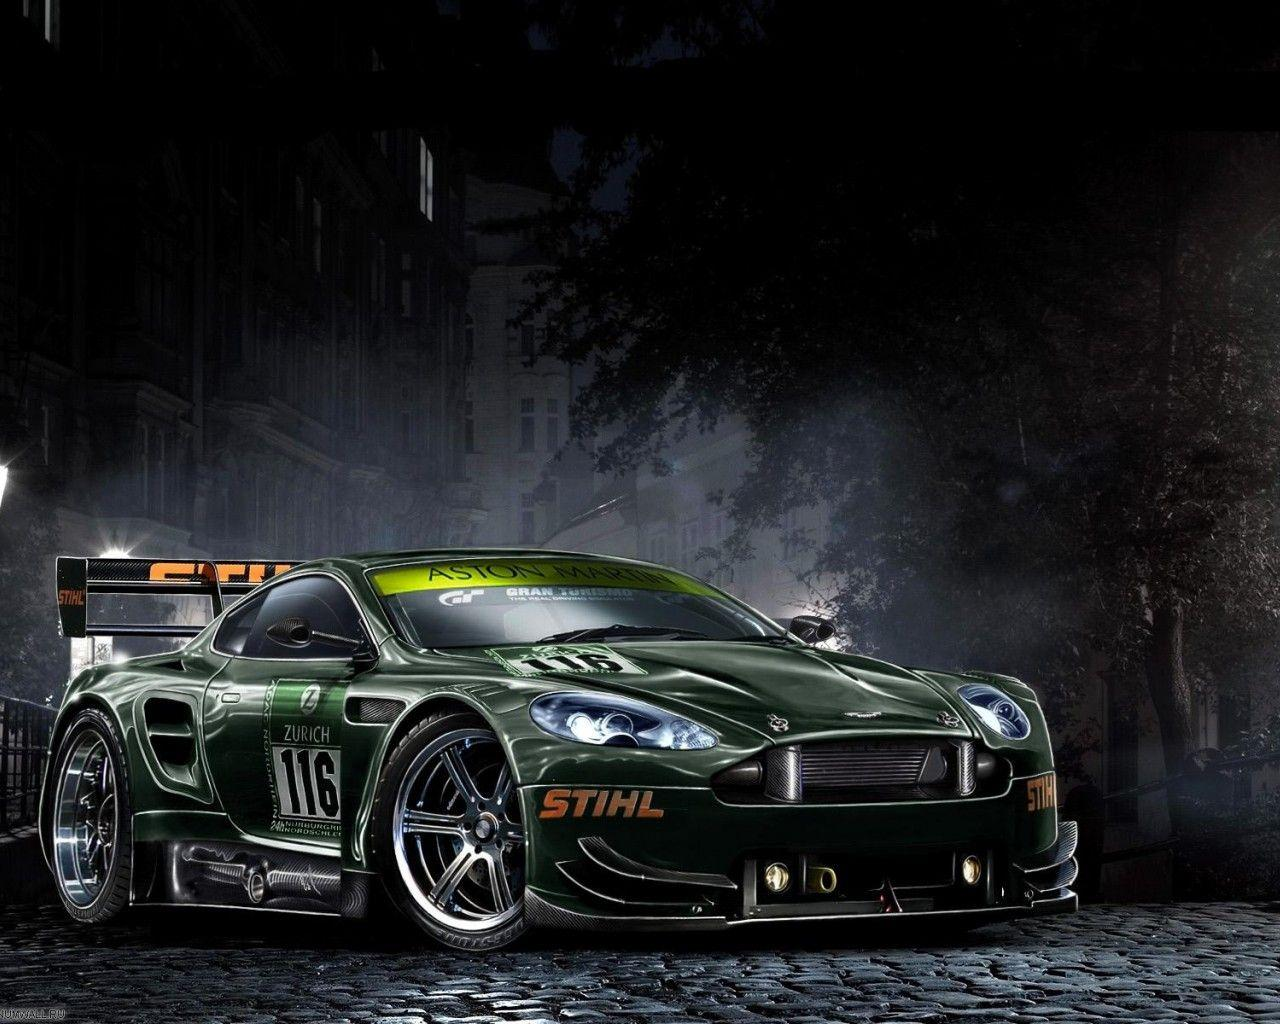 stihl wallpaper. sports car hd 2 1280x1024 pixels wide desktop wallpapers stihl wallpaper